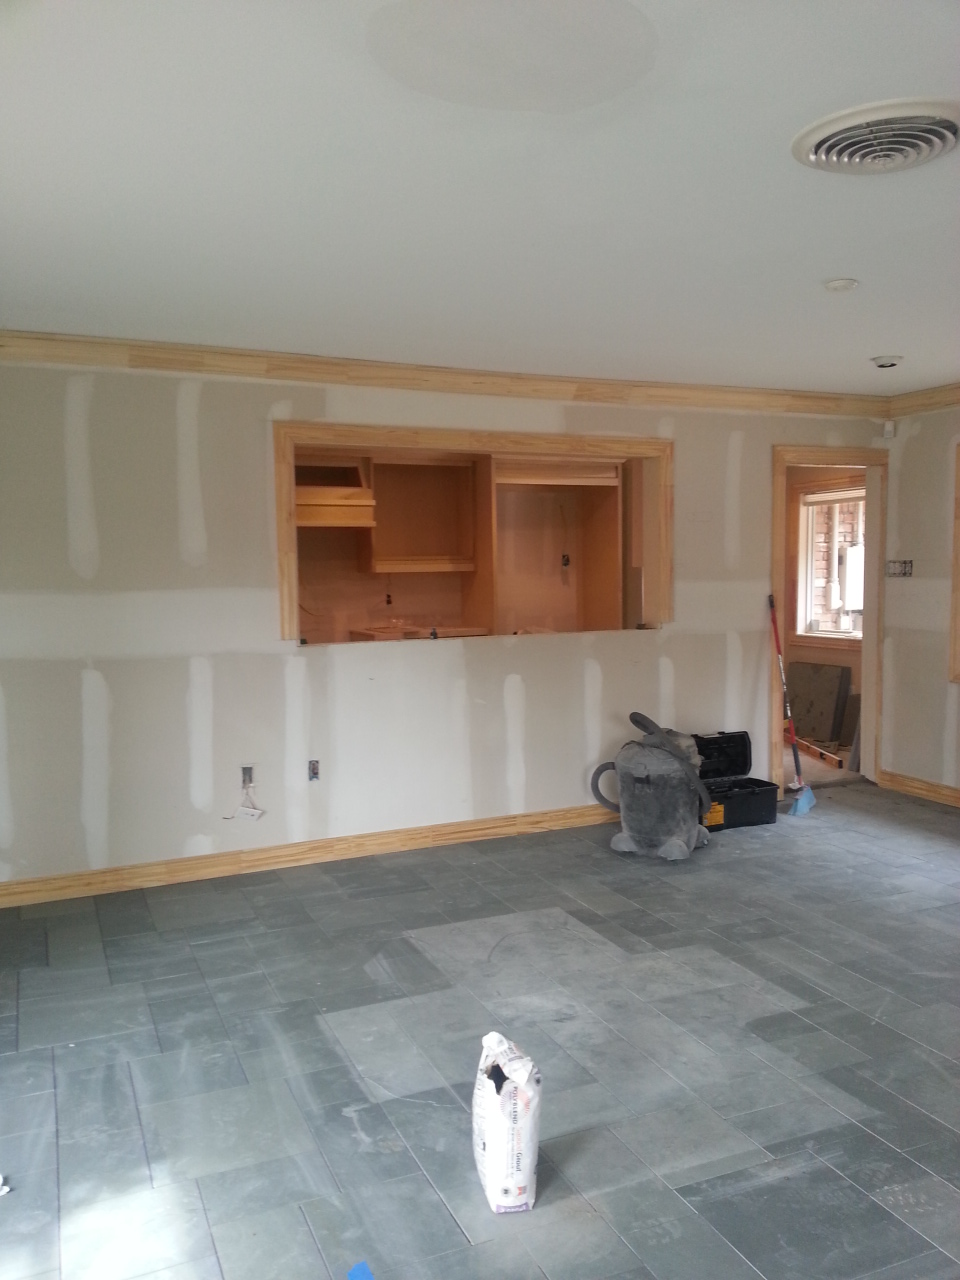 DURING. New tile is in, cabinets in the kitchen are being built.